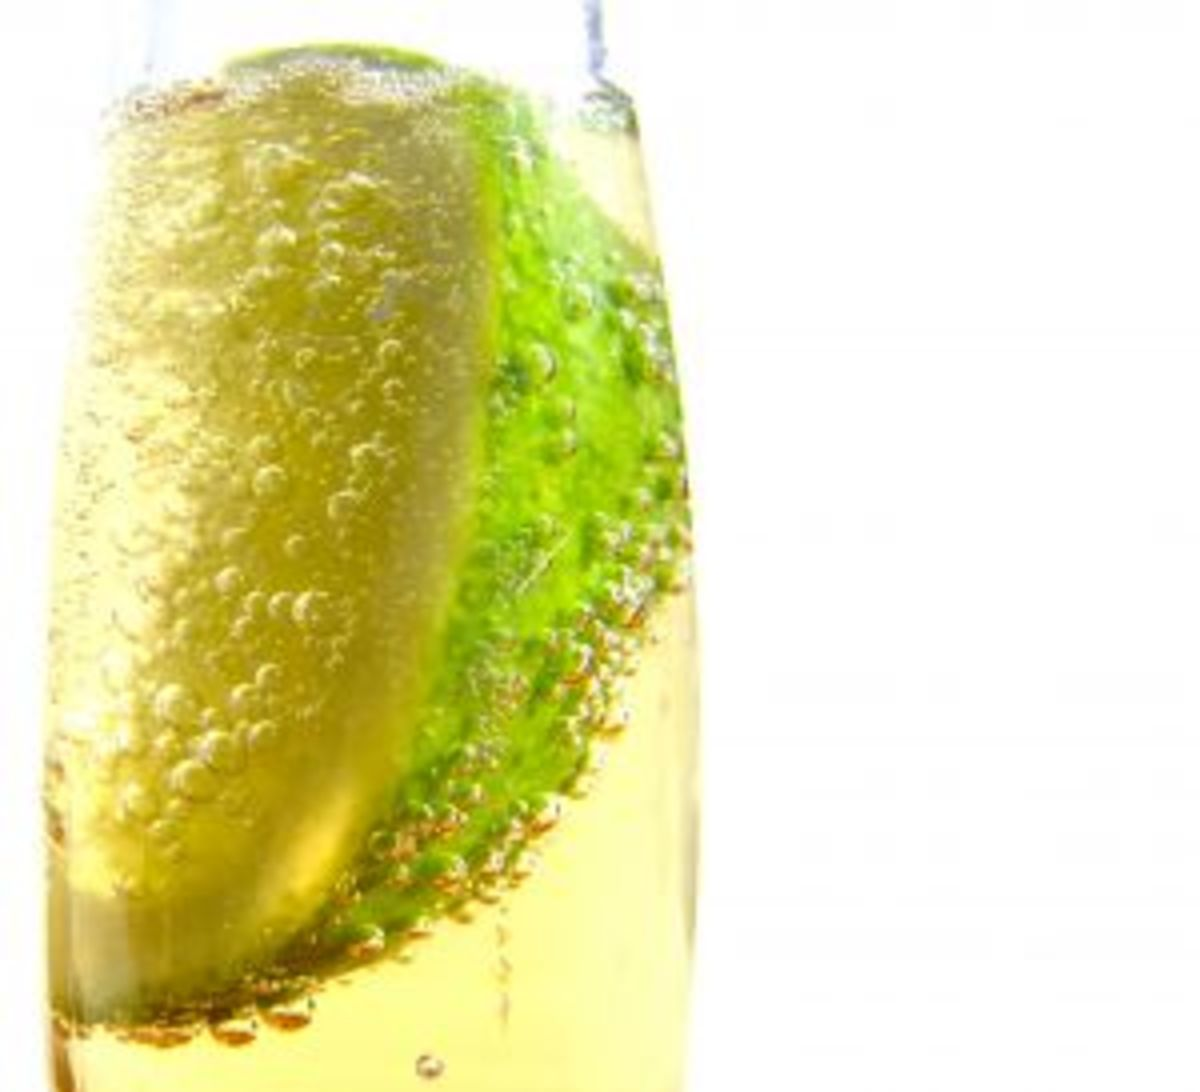 Effervescence is a product of the reaction between limestone and vinegar. Effervescence occurs in soda, beer and wine.